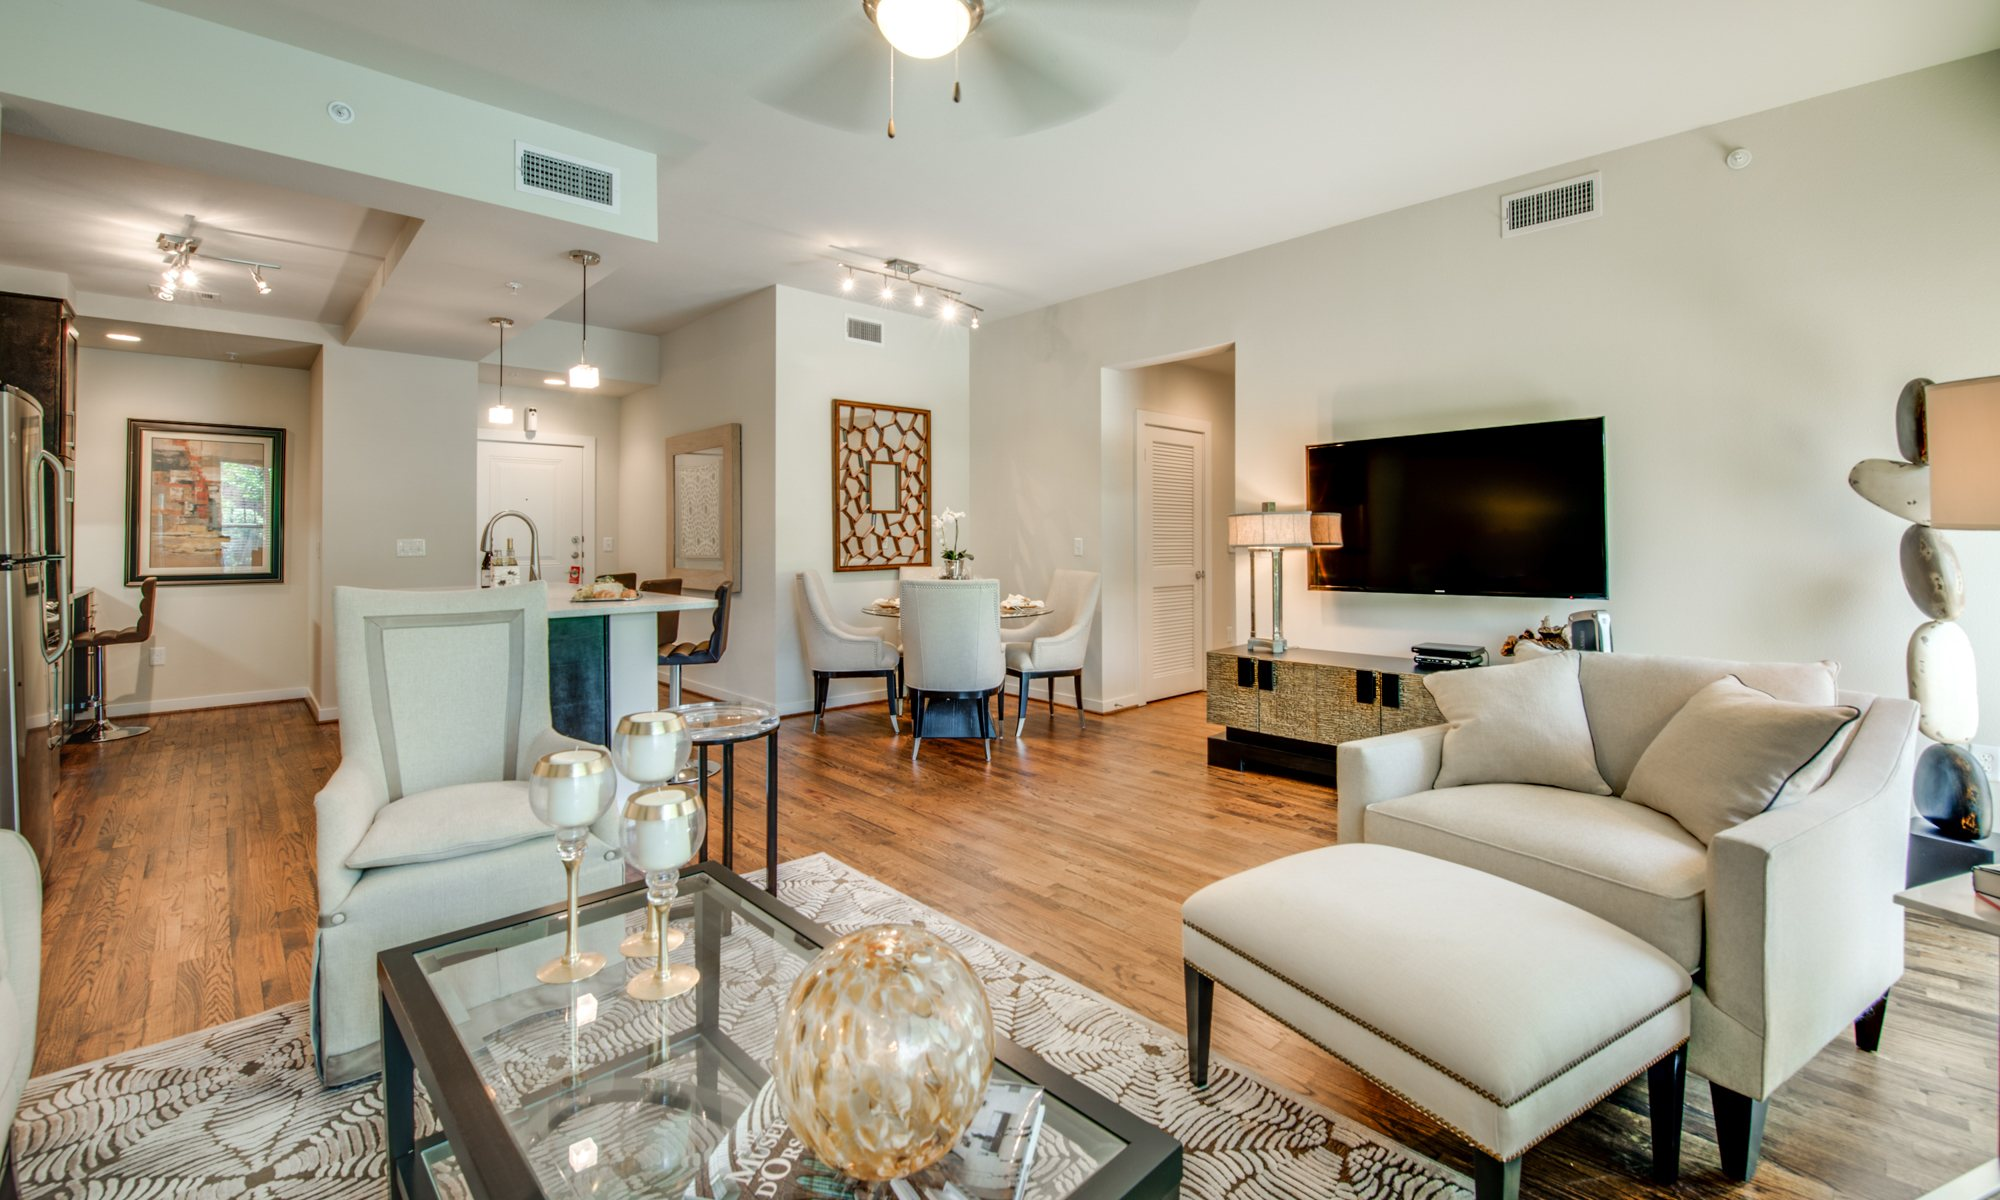 Apartments near houston houses for rent info - 1 bedroom apartments houston all bills paid ...